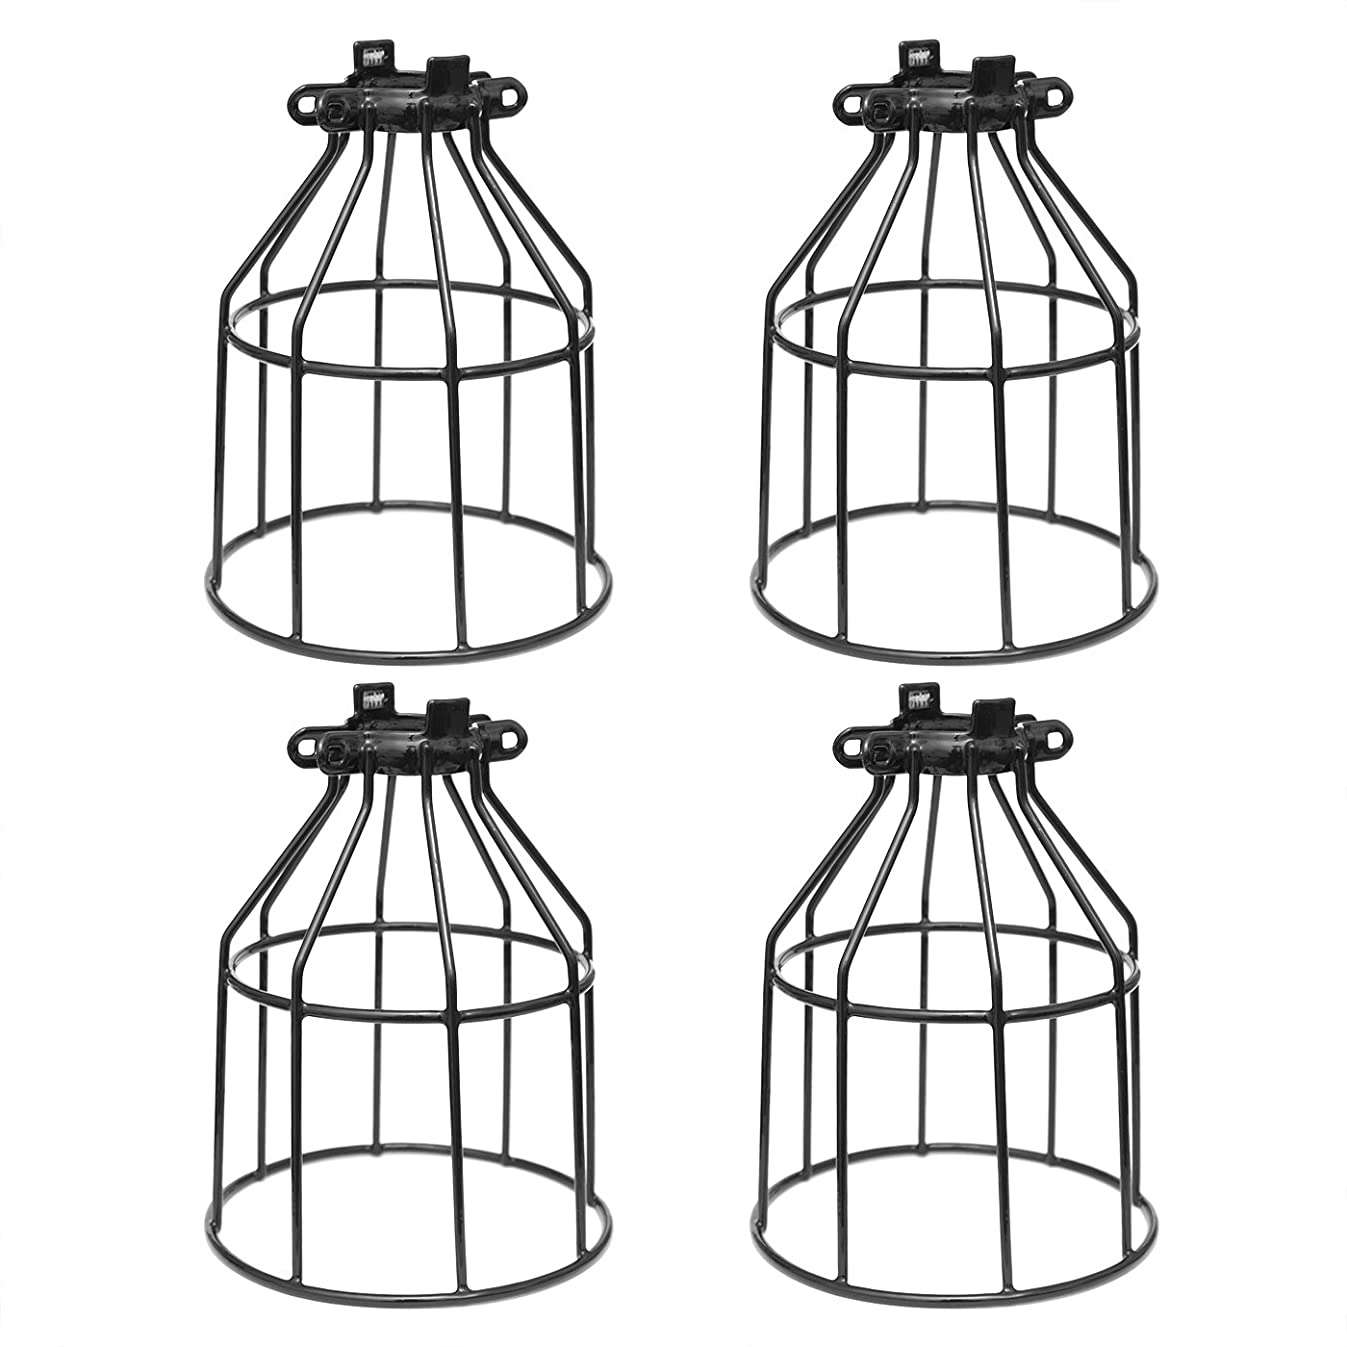 Metal Bulb Guard, Clamp On Steel Lamp Cage for Hanging Pendant Lights, Ceiling Fan Light and Vintage Lamp Holders,Open Style Black Industrial Wire Iron Bird Cage,4-Pack, by Seaside Village